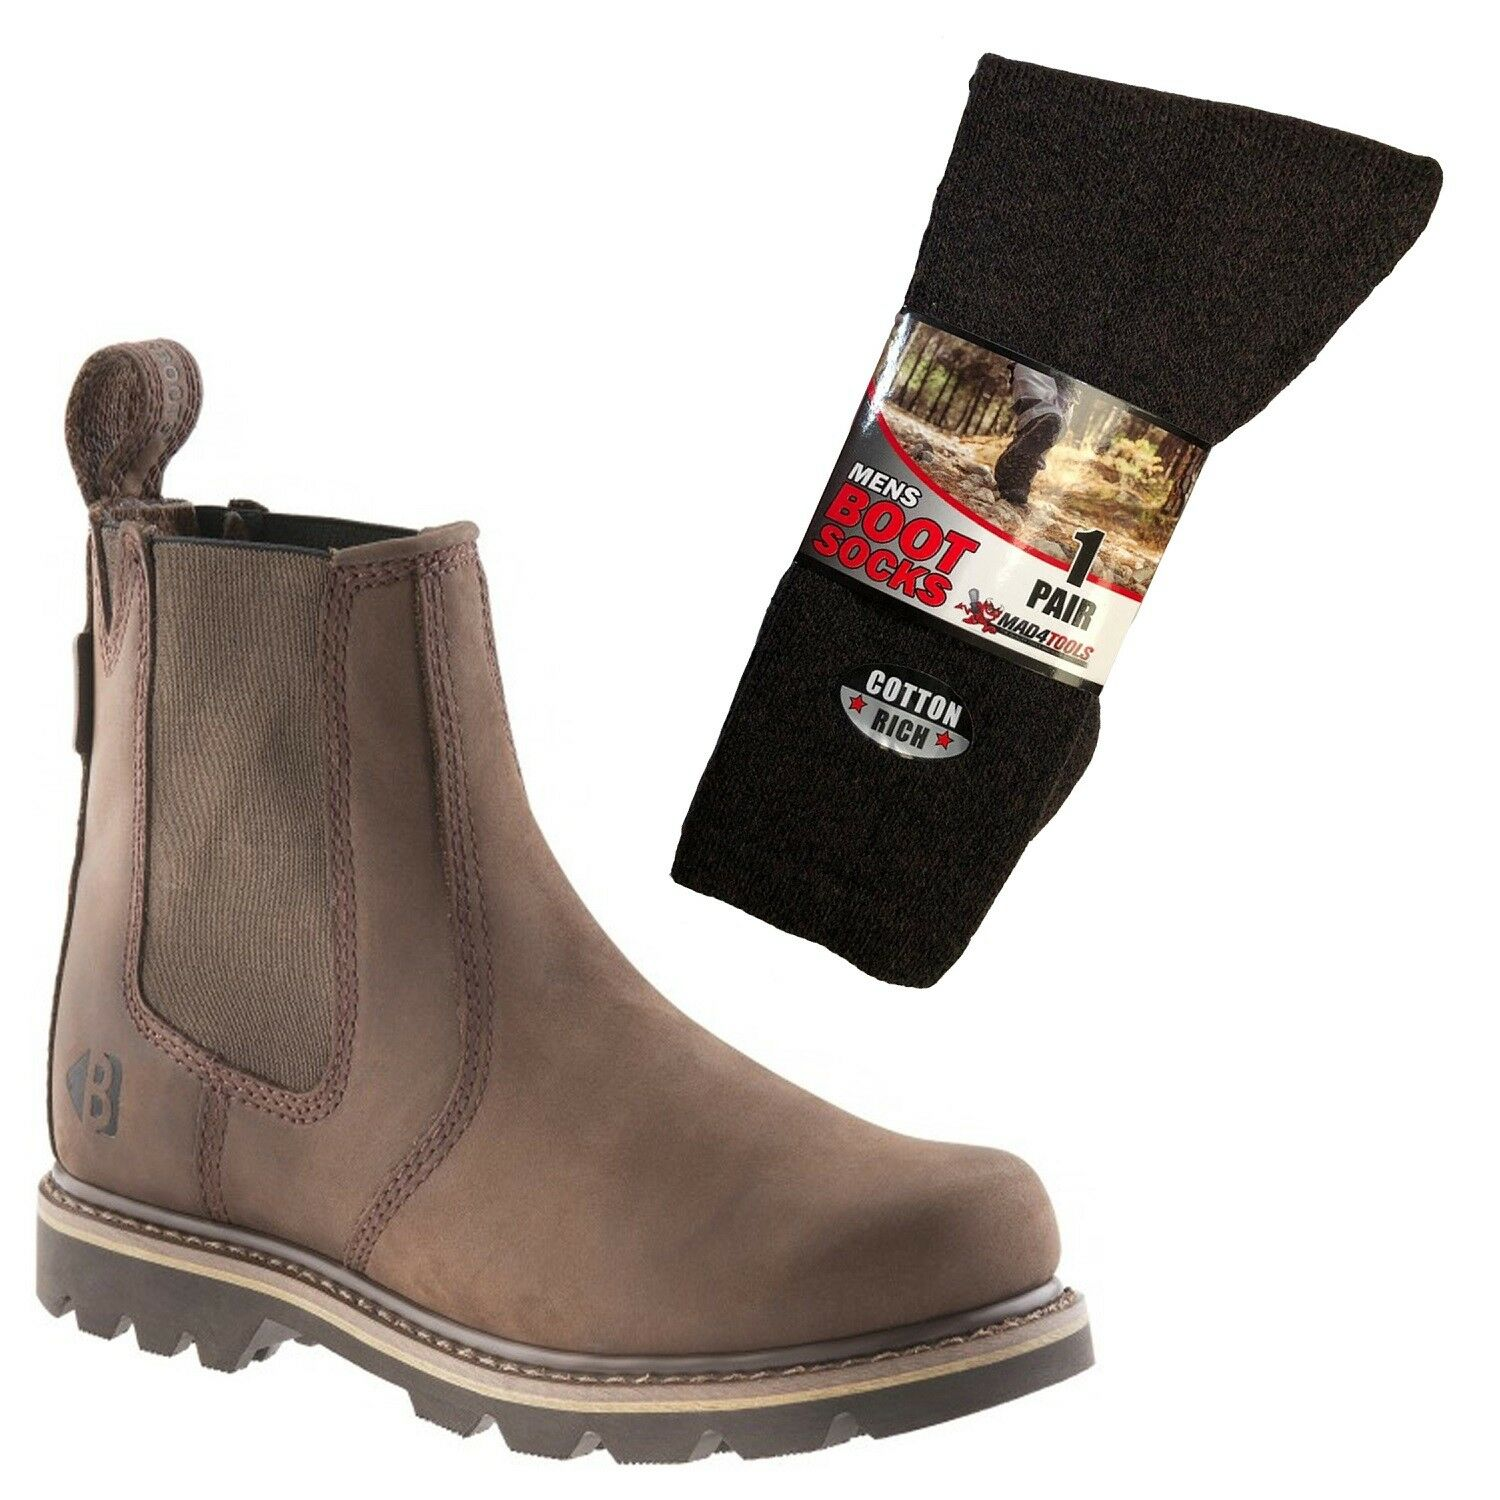 Buckler B1400 Non Safety Dealer Boots Brown (Sizes 6-13) & 1 Pair of Socks